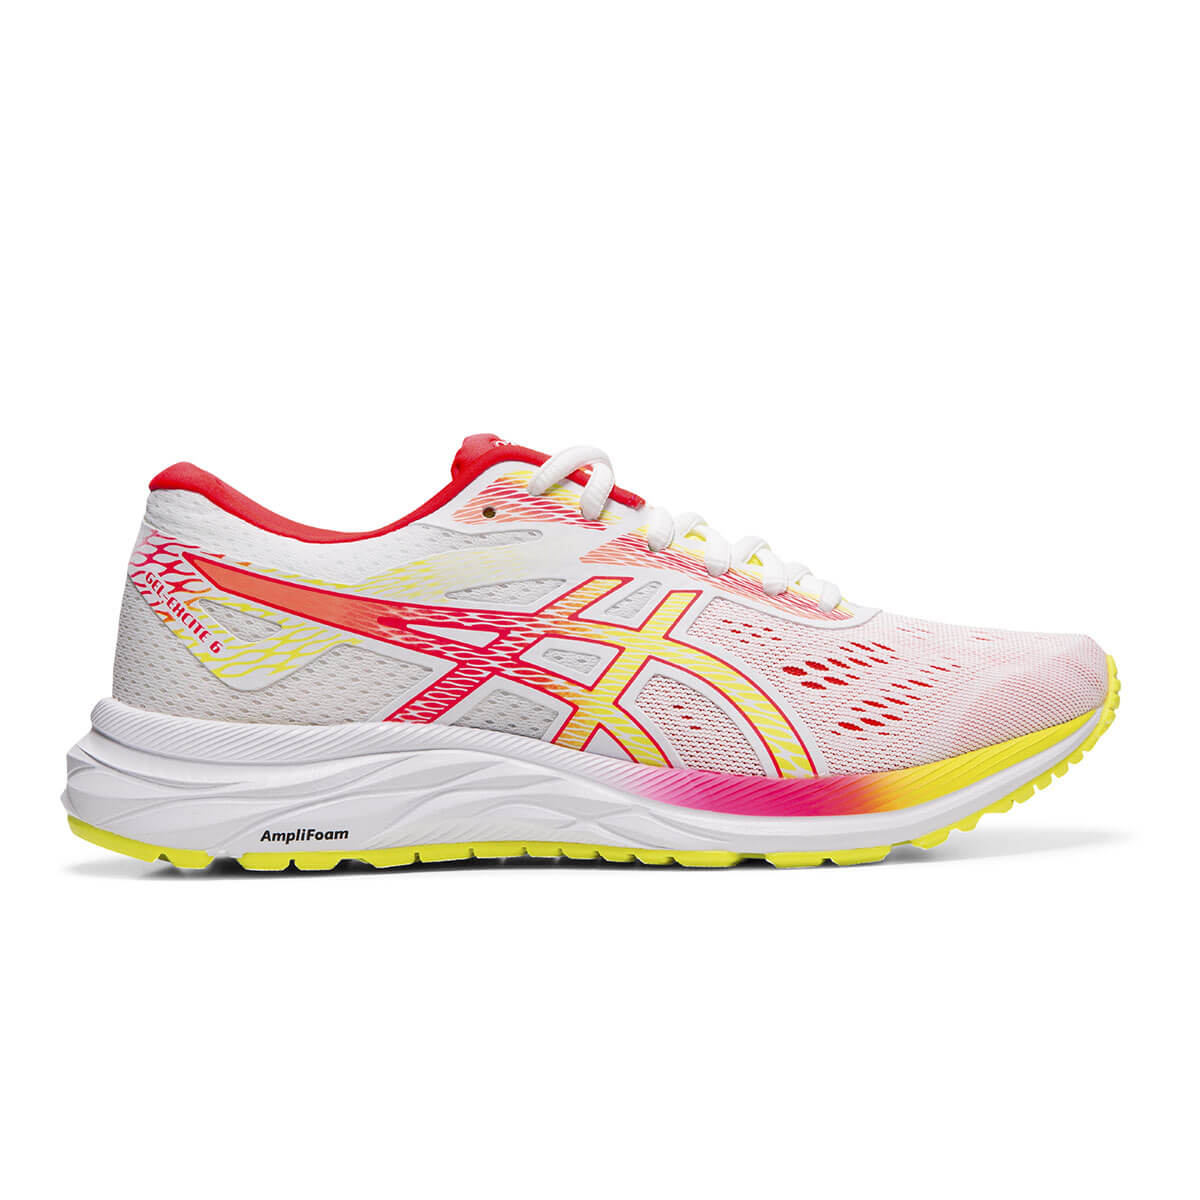 ZAPATILLA NEUTRA MUJER ASICS GEL-EXCITE 6 W